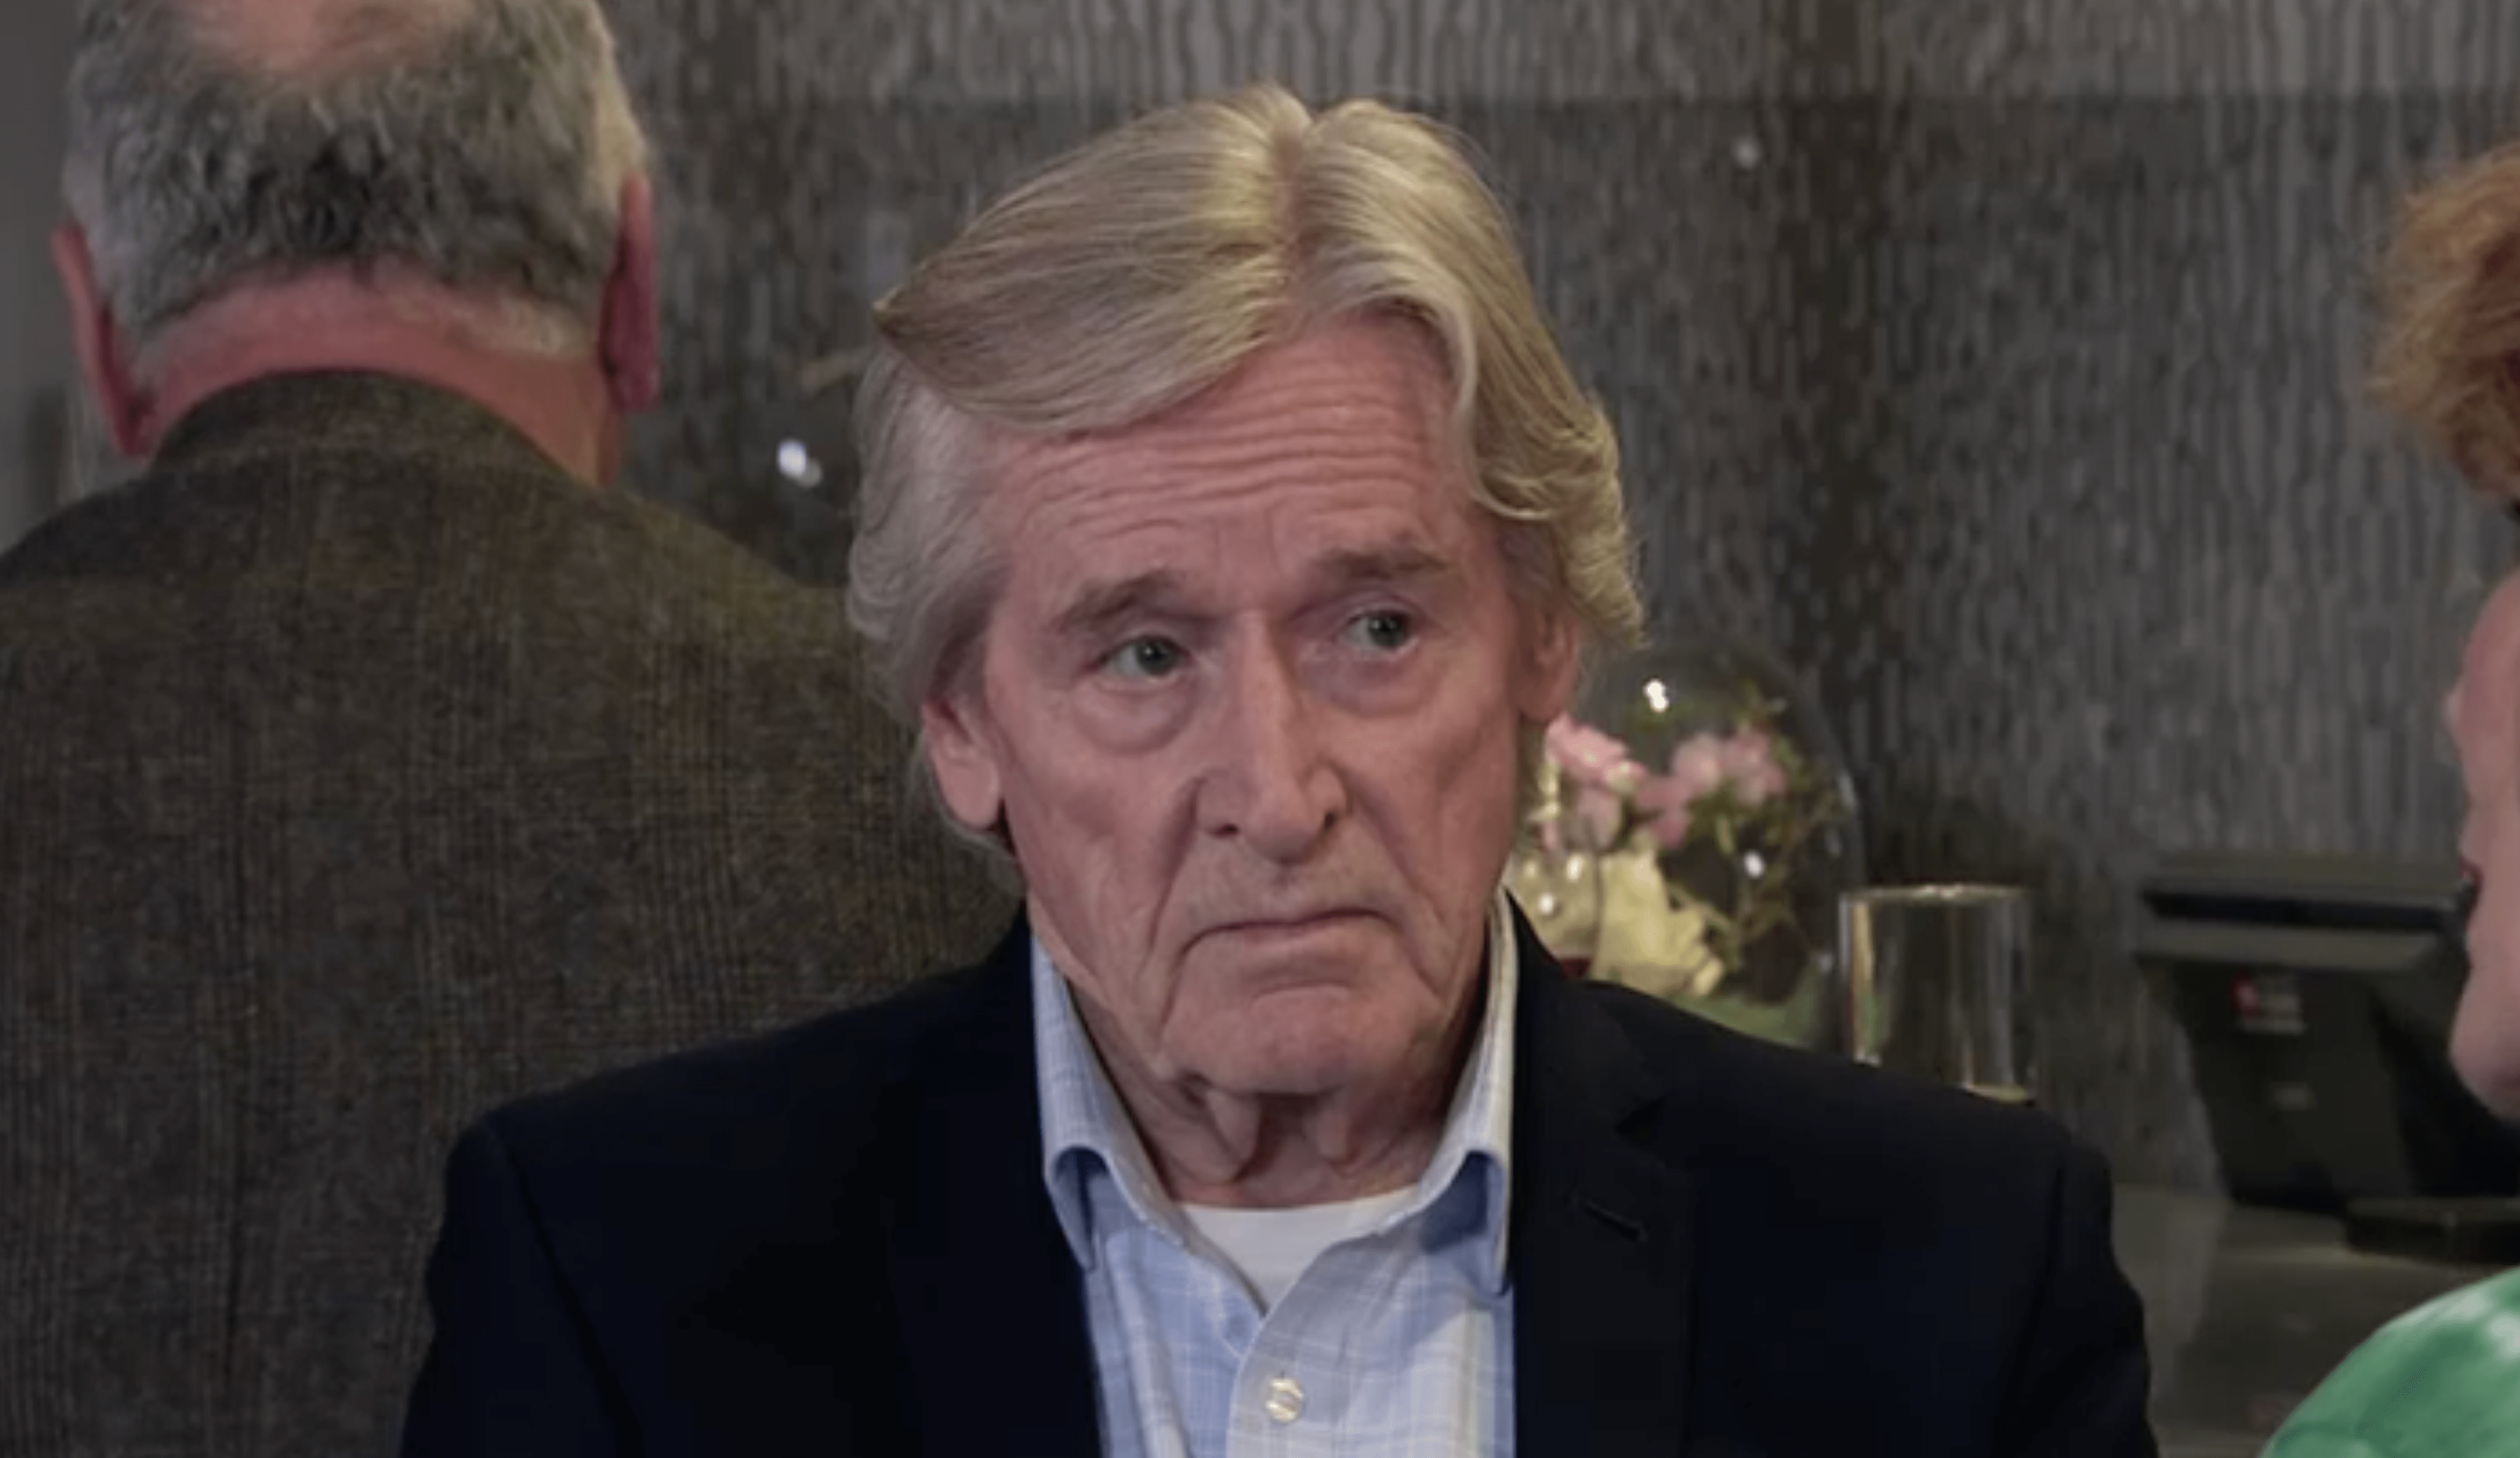 Coronation Street spoilers: Shock exit for Ken Barlow as he decides to leave?